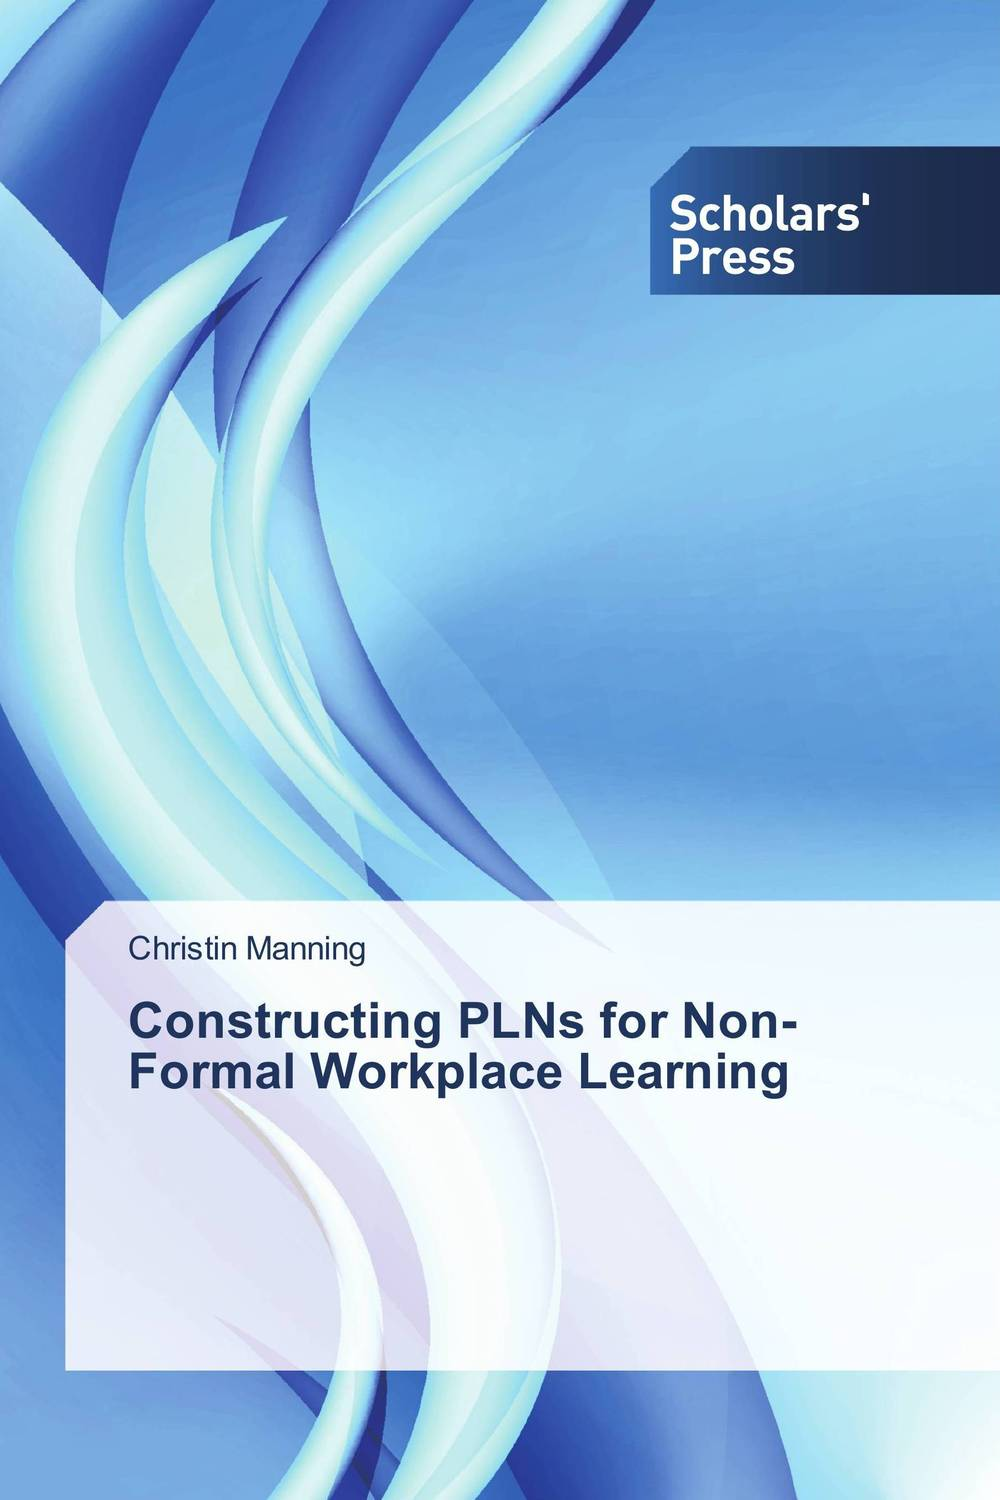 Constructing PLNs for Non-Formal Workplace Learning stephen denning the leader s guide to radical management reinventing the workplace for the 21st century